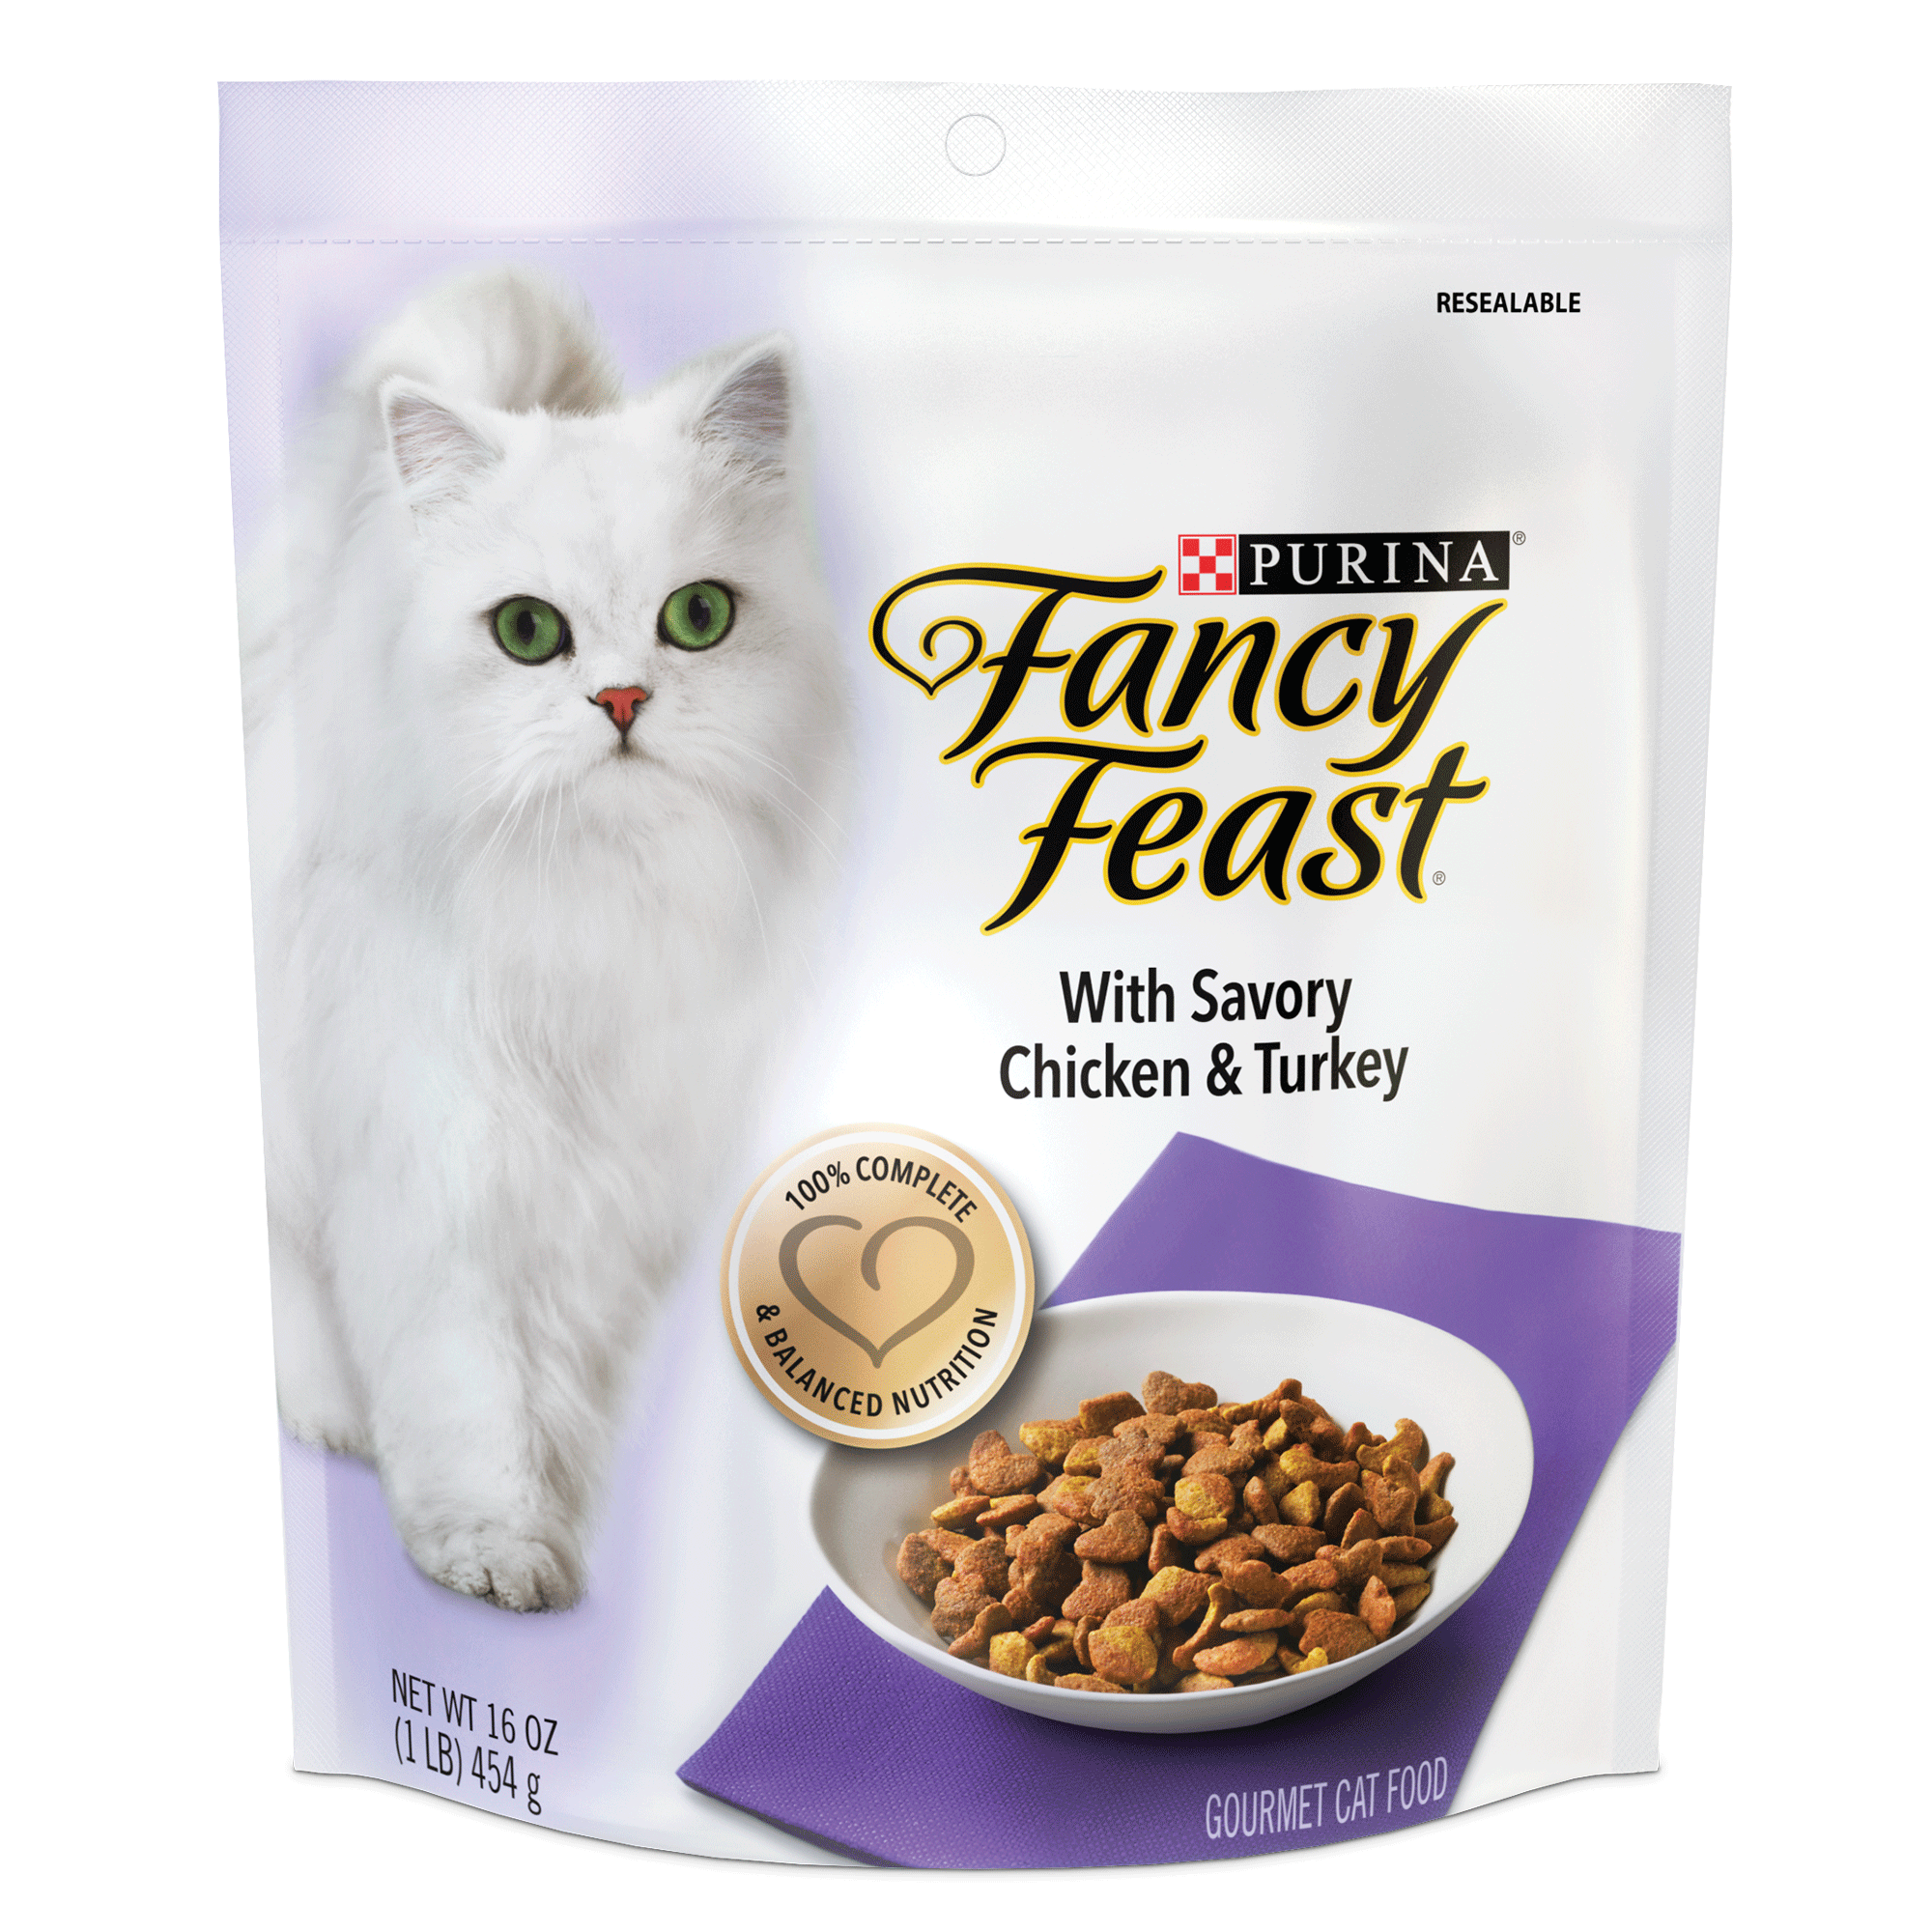 (4 pack) Purina Fancy Feast With Savory Chicken & Turkey Dry Cat Food, 16 oz